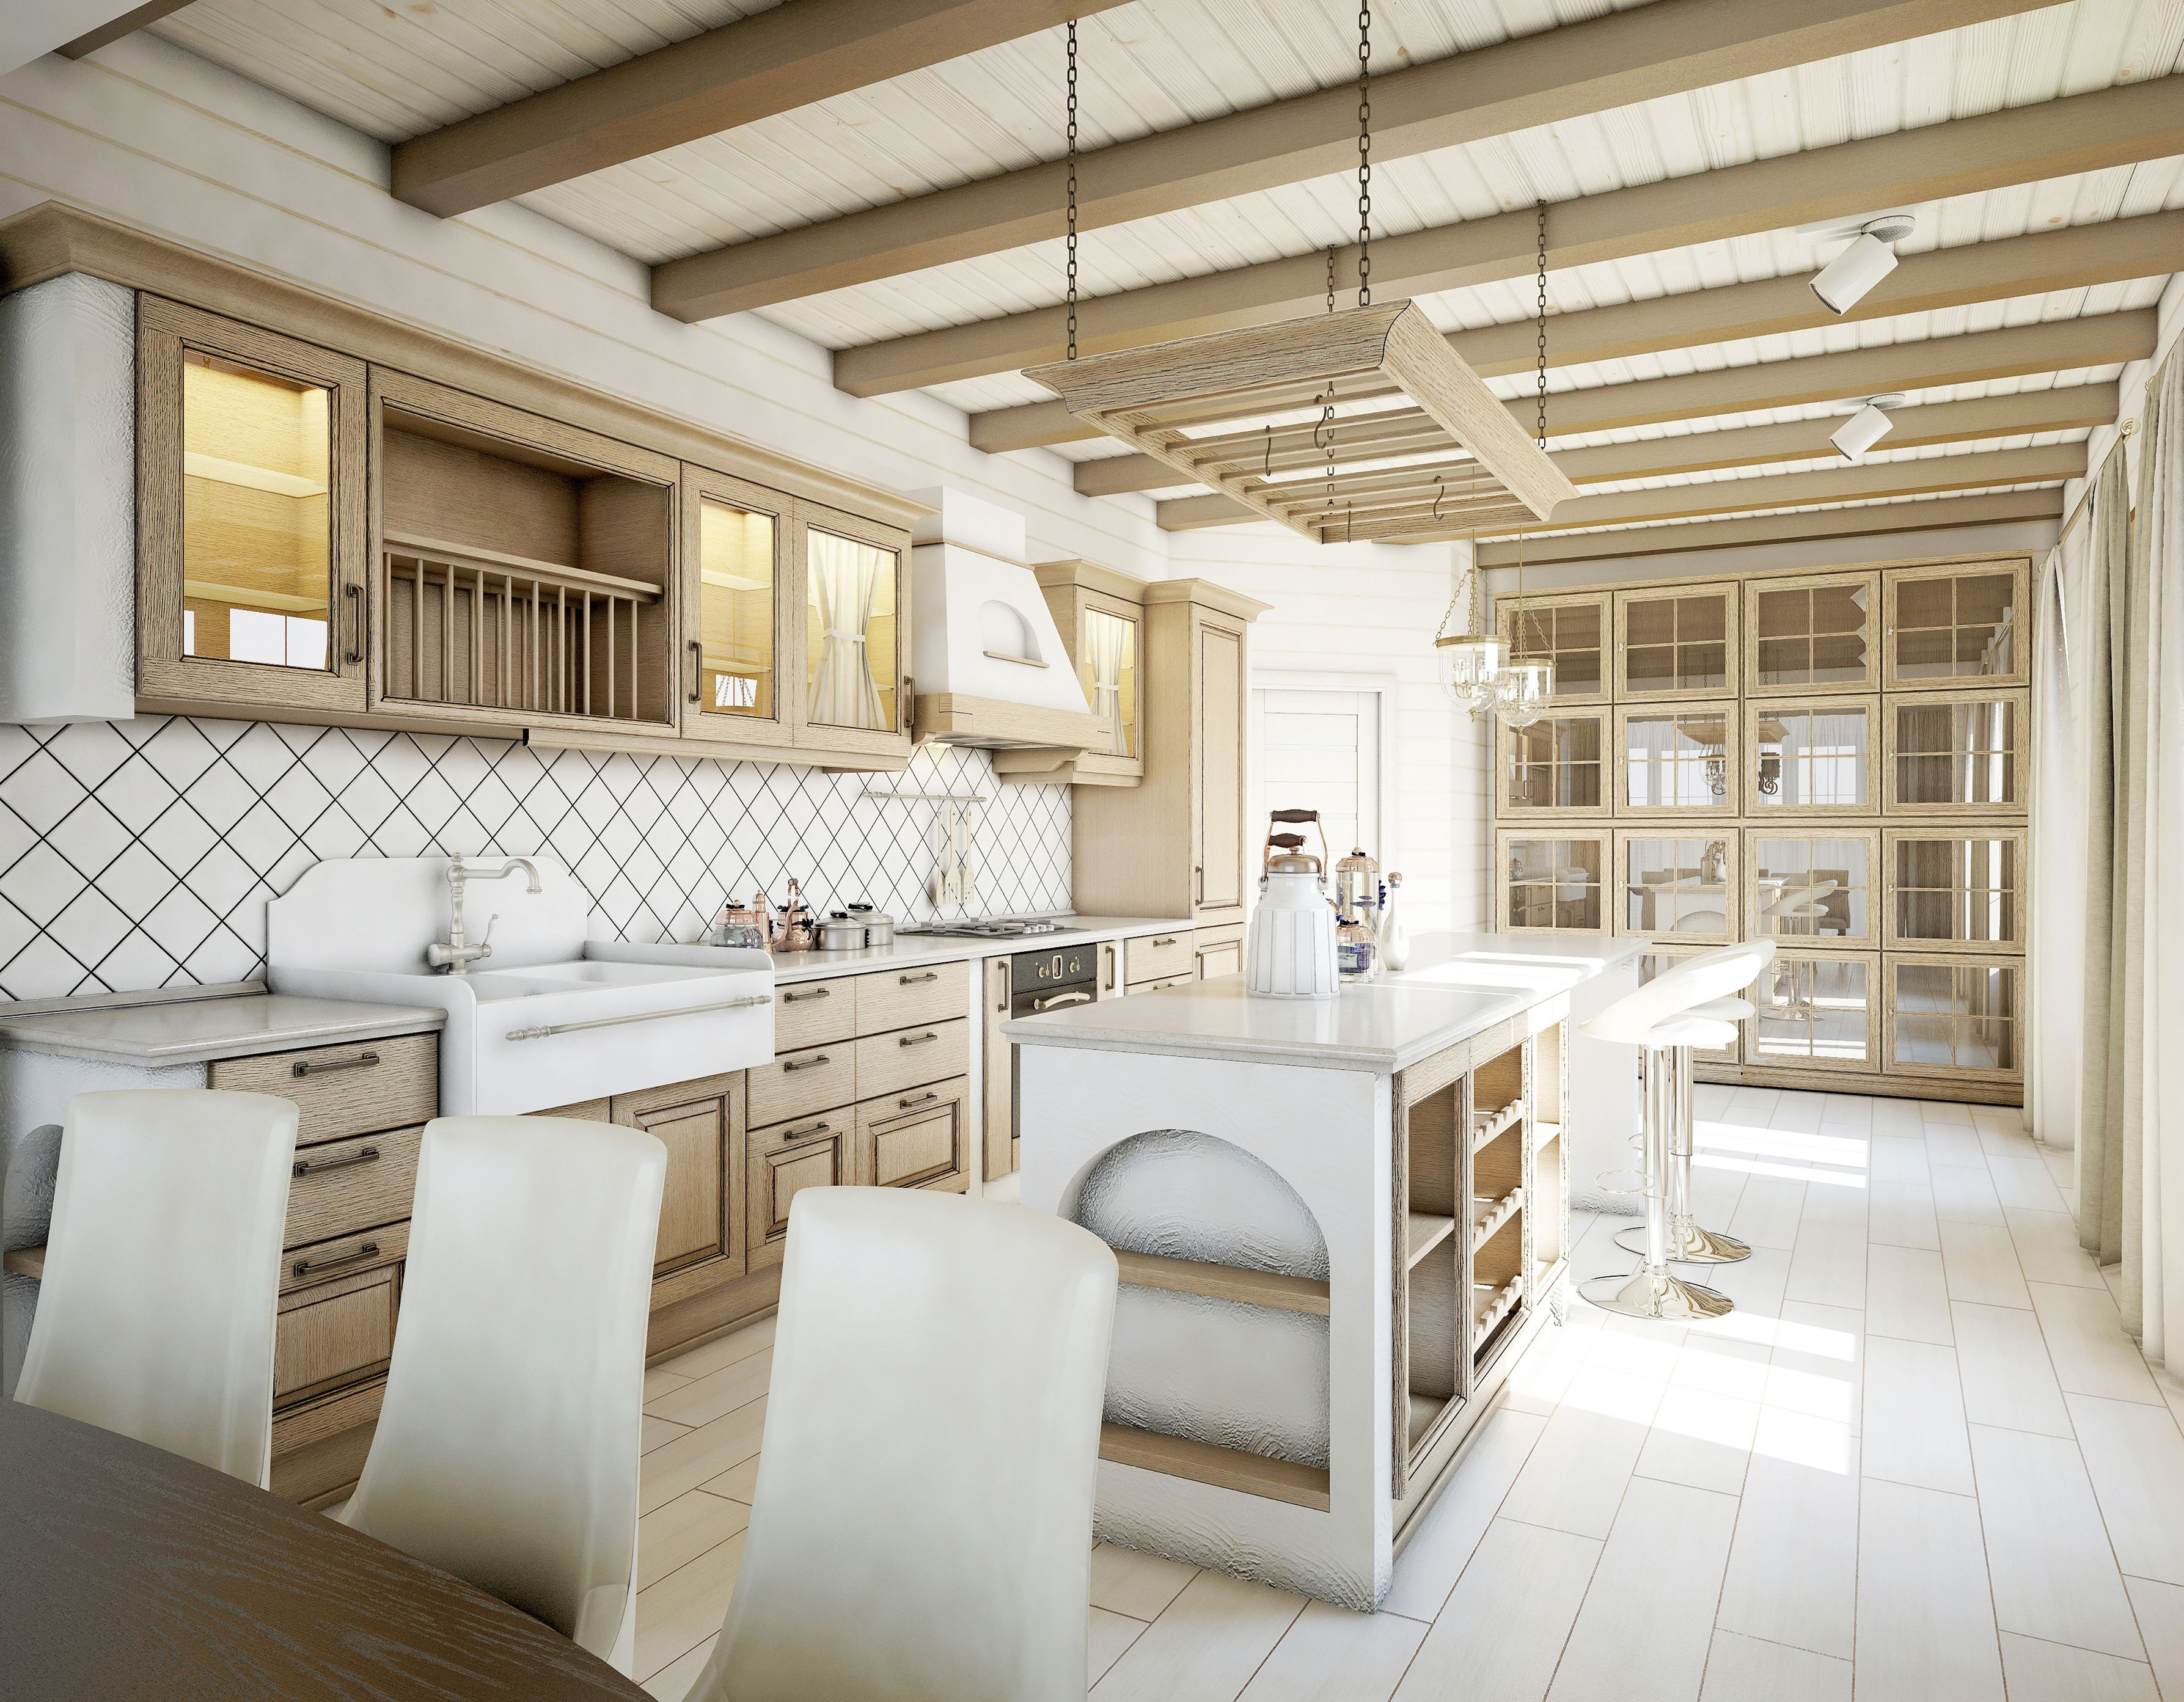 porcelain tile vs hardwood flooring cost of the basics of wood look ceramic tile pertaining to modern farmhouse kitchen 738776527 5a834c38119fa80036a47489